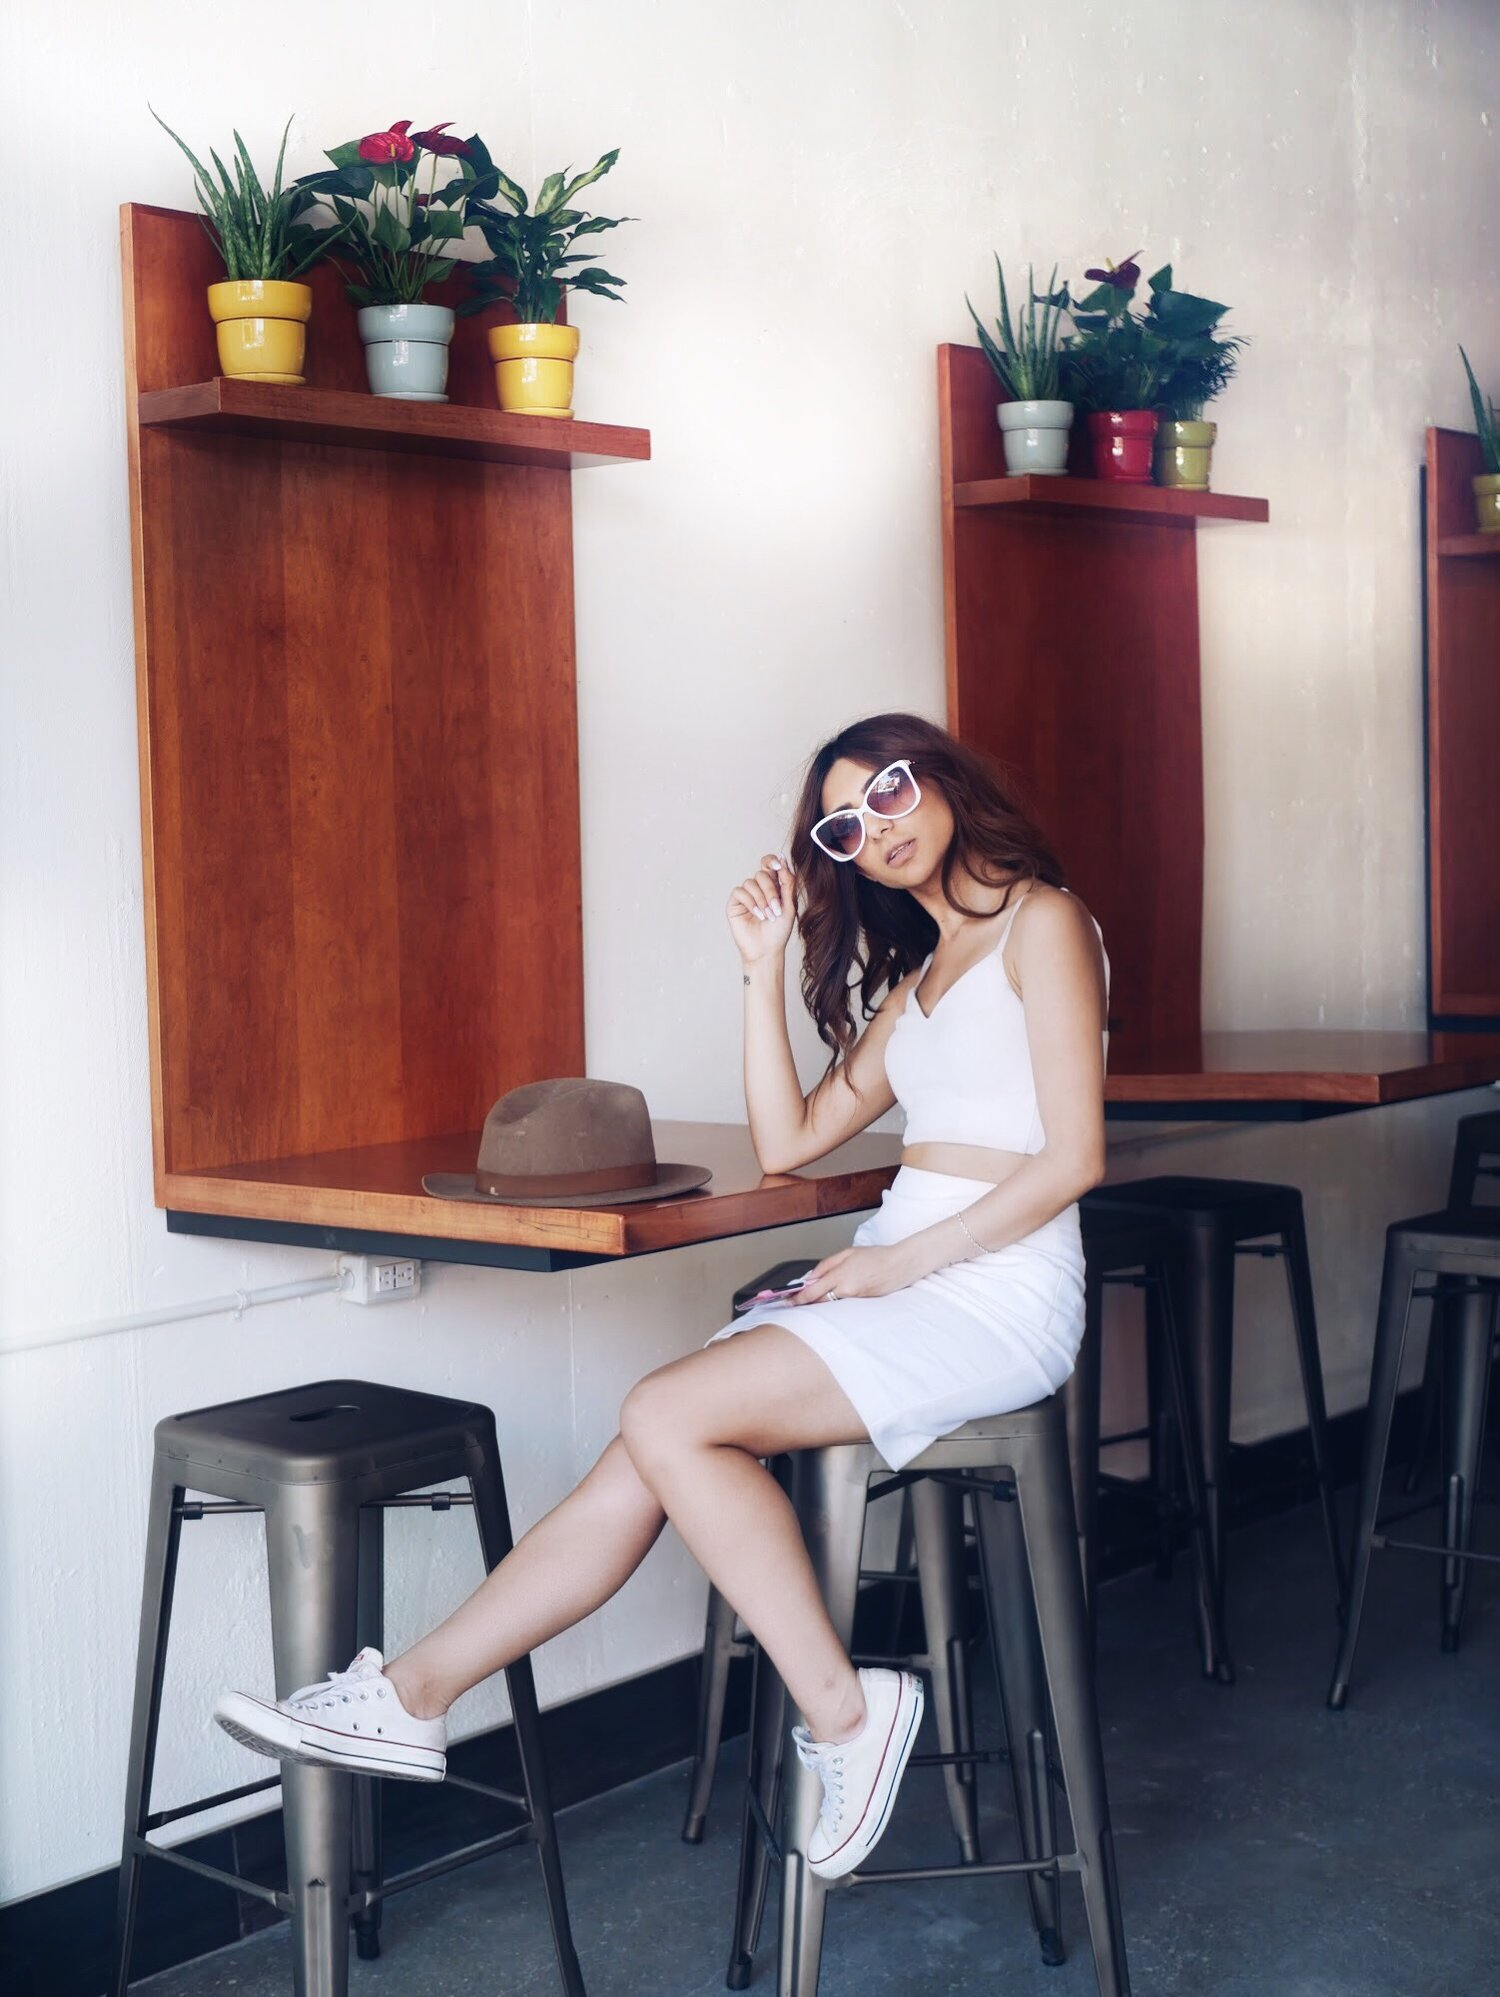 Summer Style Diary - - StyleI love summers in Toronto, the city is buzzing with tourists and locals on patios and coffee shops. Since we get so many months of cold winters one has to make the most of the heat!